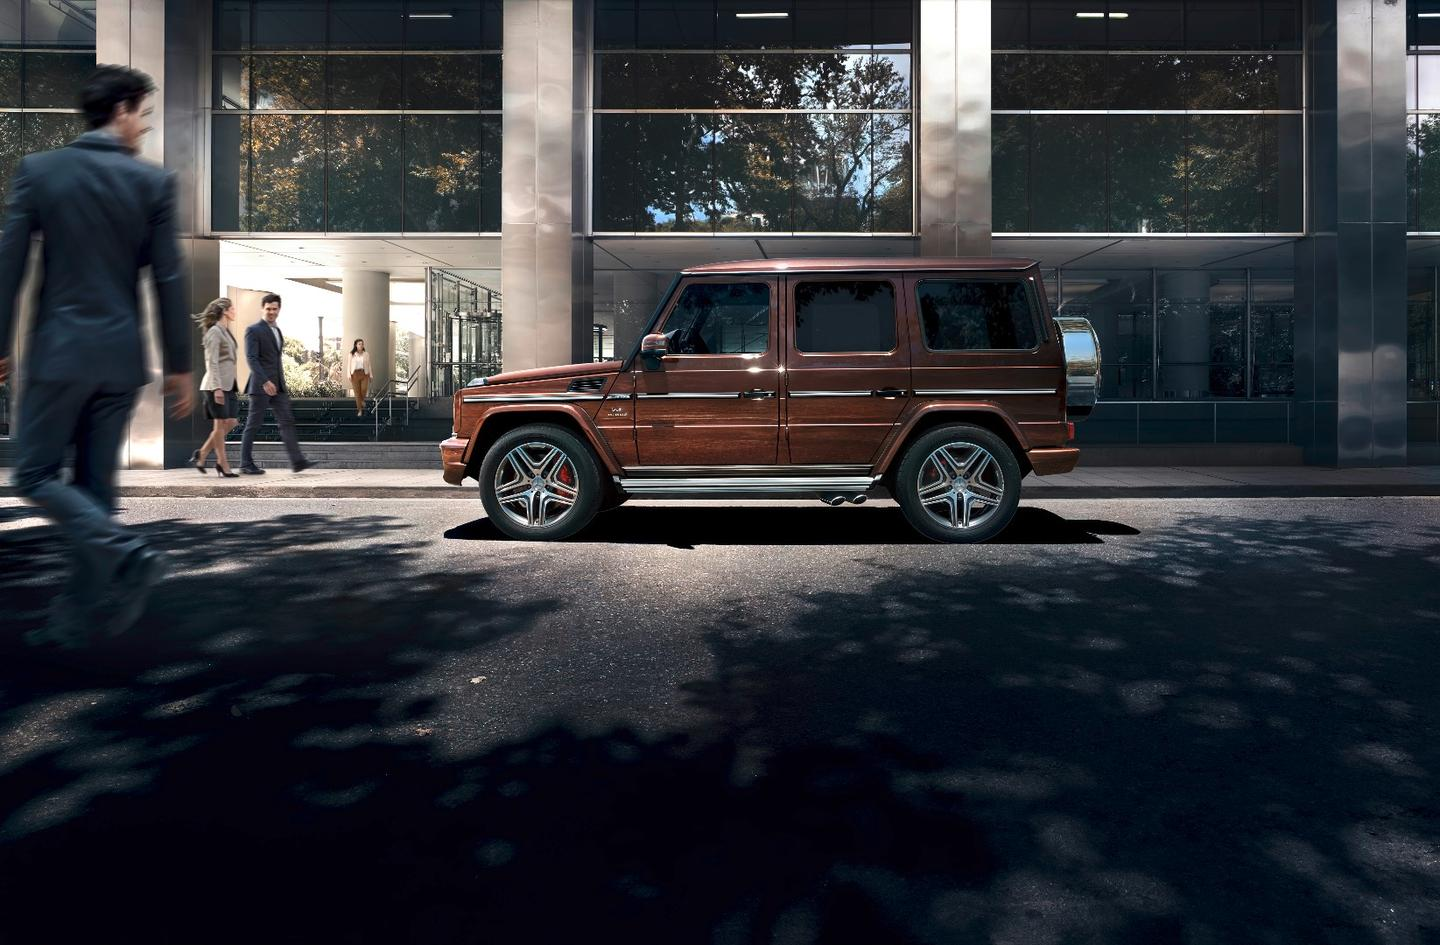 AMG G 63 with design mystic brown bright paint job